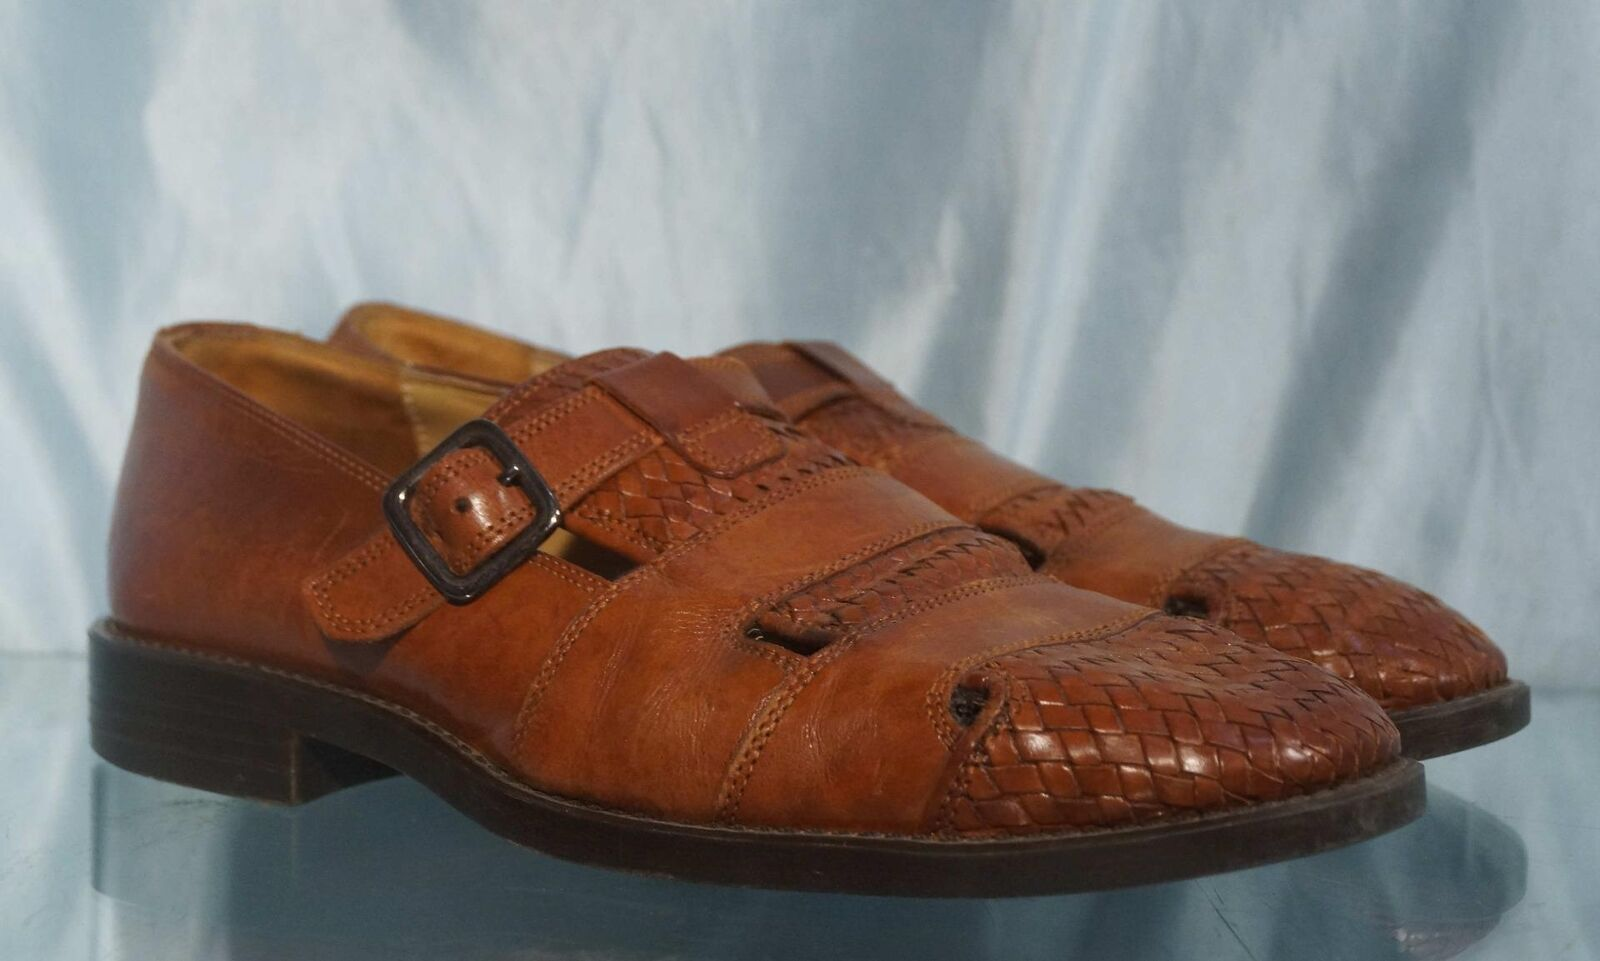 Comfortable Woven Closed Toe DIMITRI  Brown Leather Sandals Sz 9M